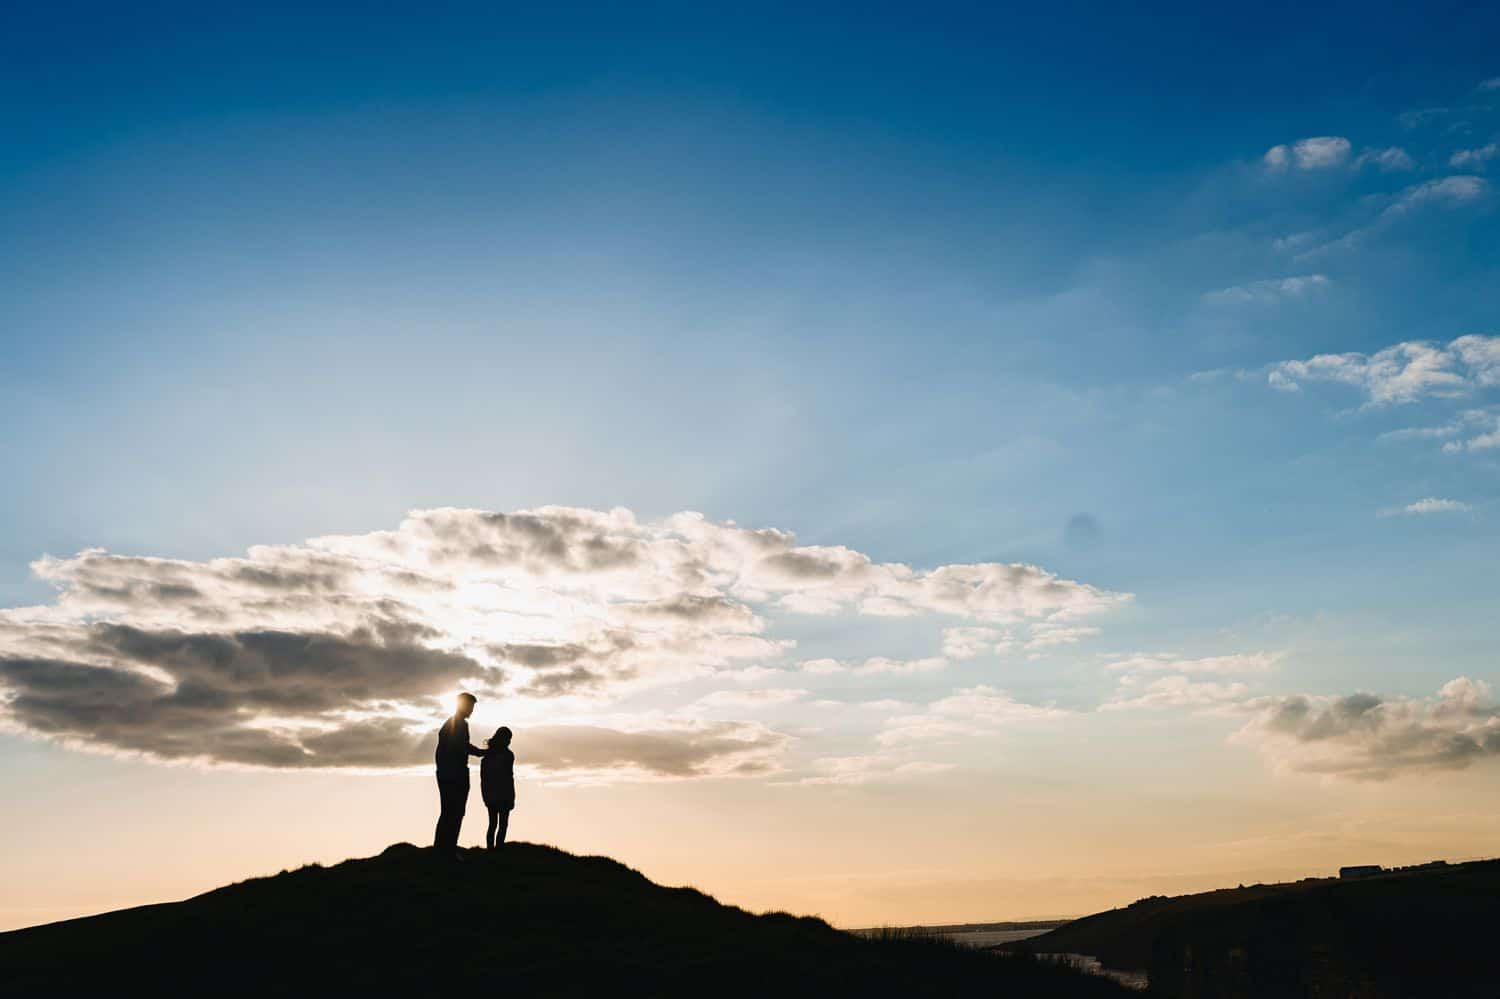 Silhouette of a father standing with his hand on his child's shoulder. They are standing on a hill overlooking the sunset sky.